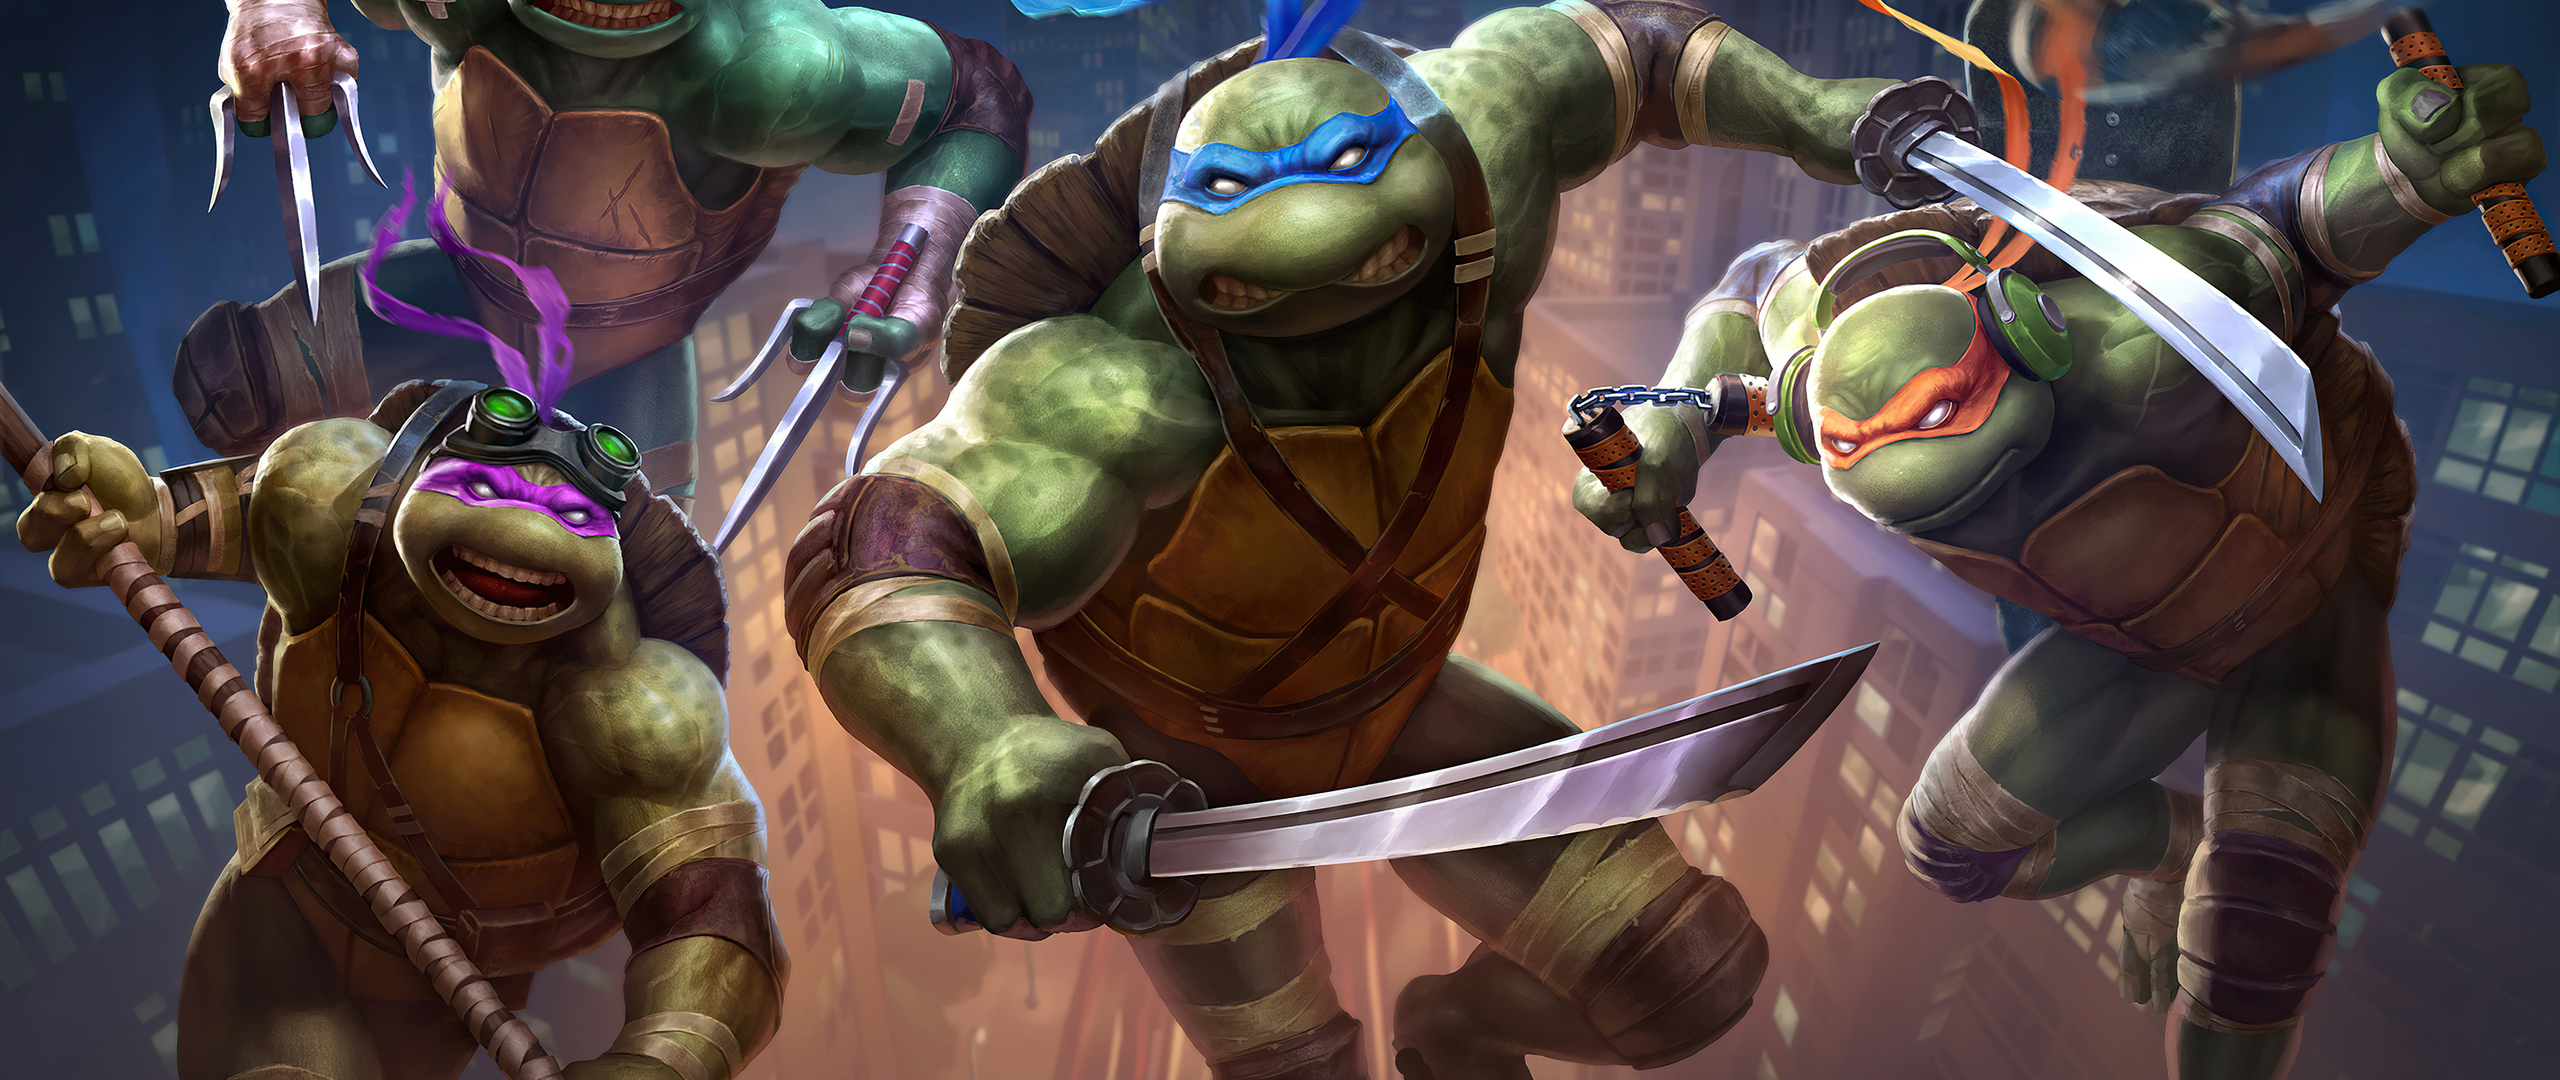 teenage-mutant-ninja-turtles-2020-bm.jpg